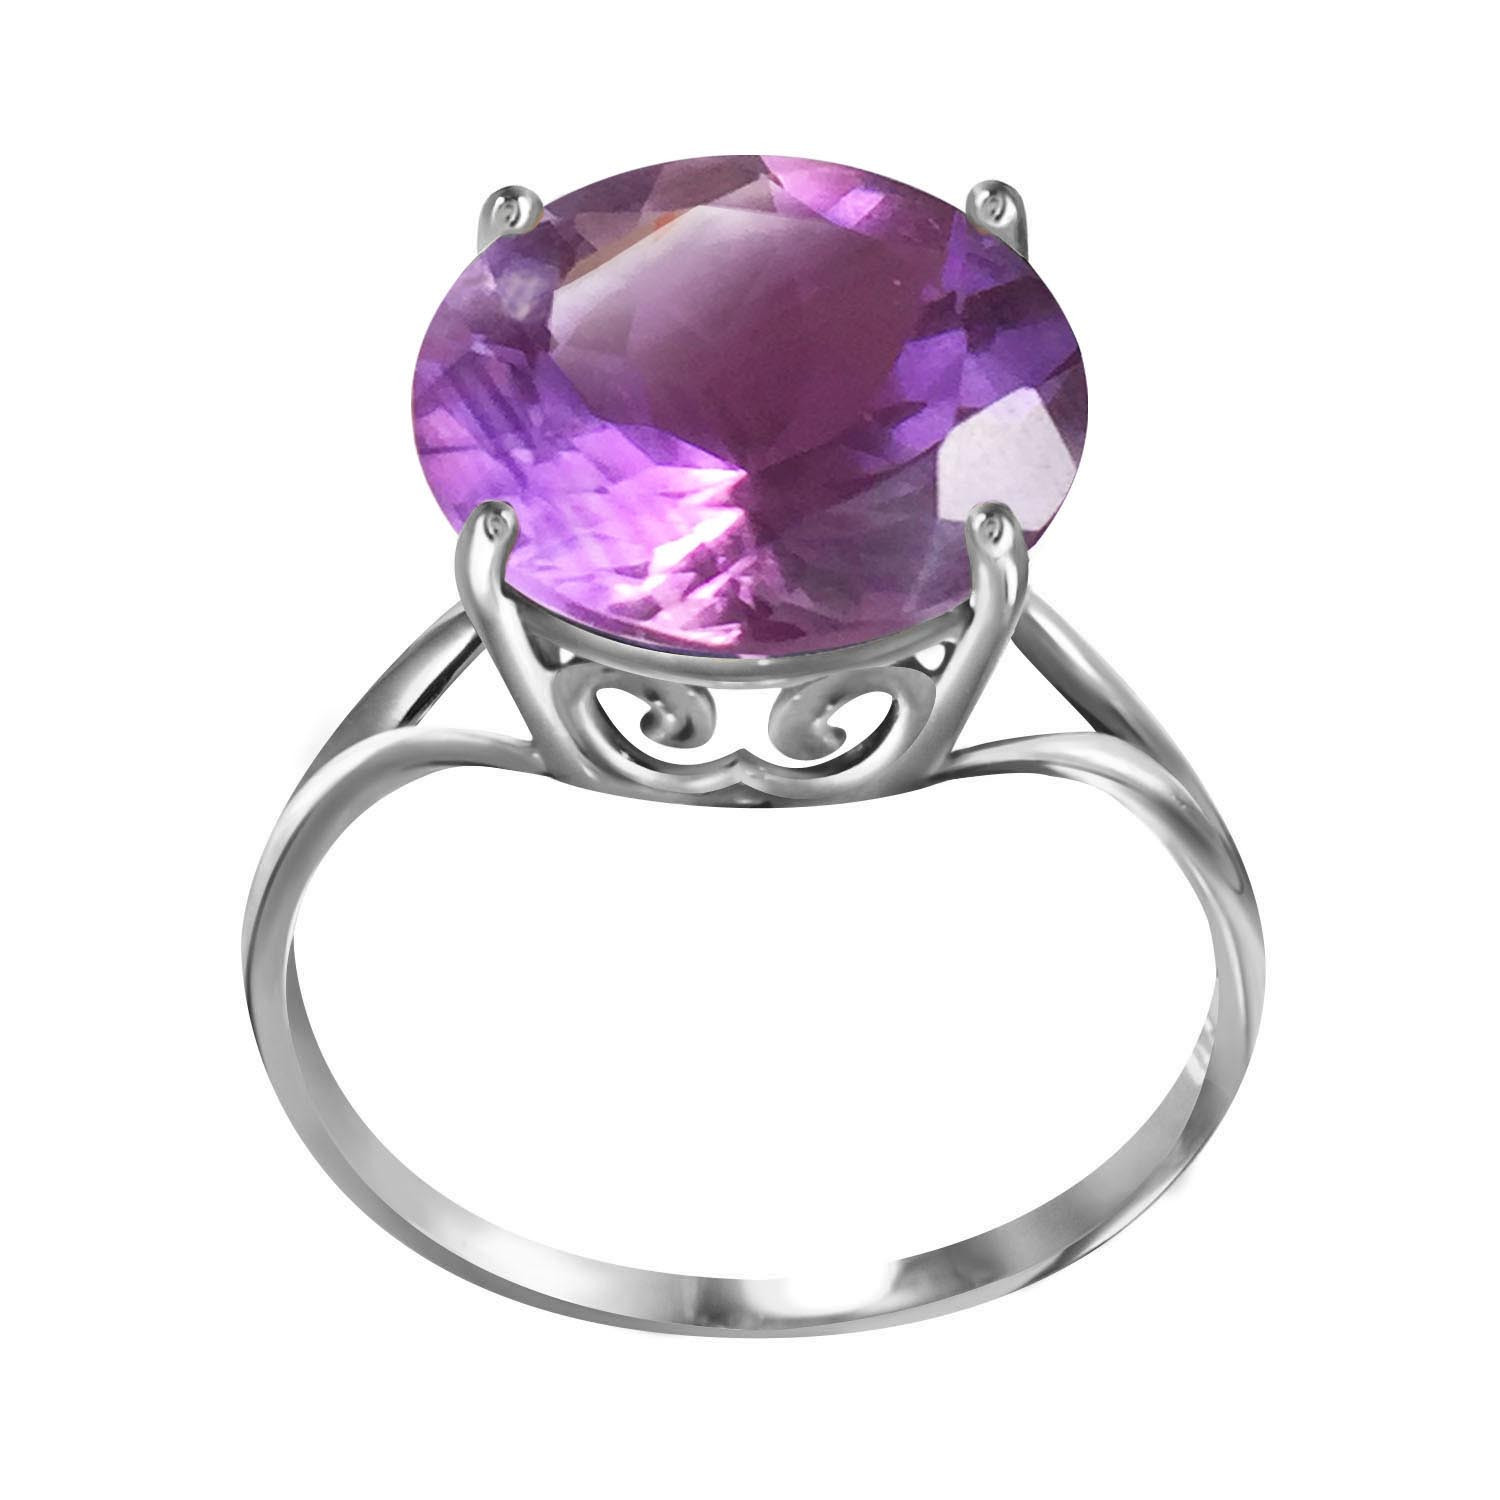 Round Cut Amethyst Ring 5.5 ct in 9ct White Gold